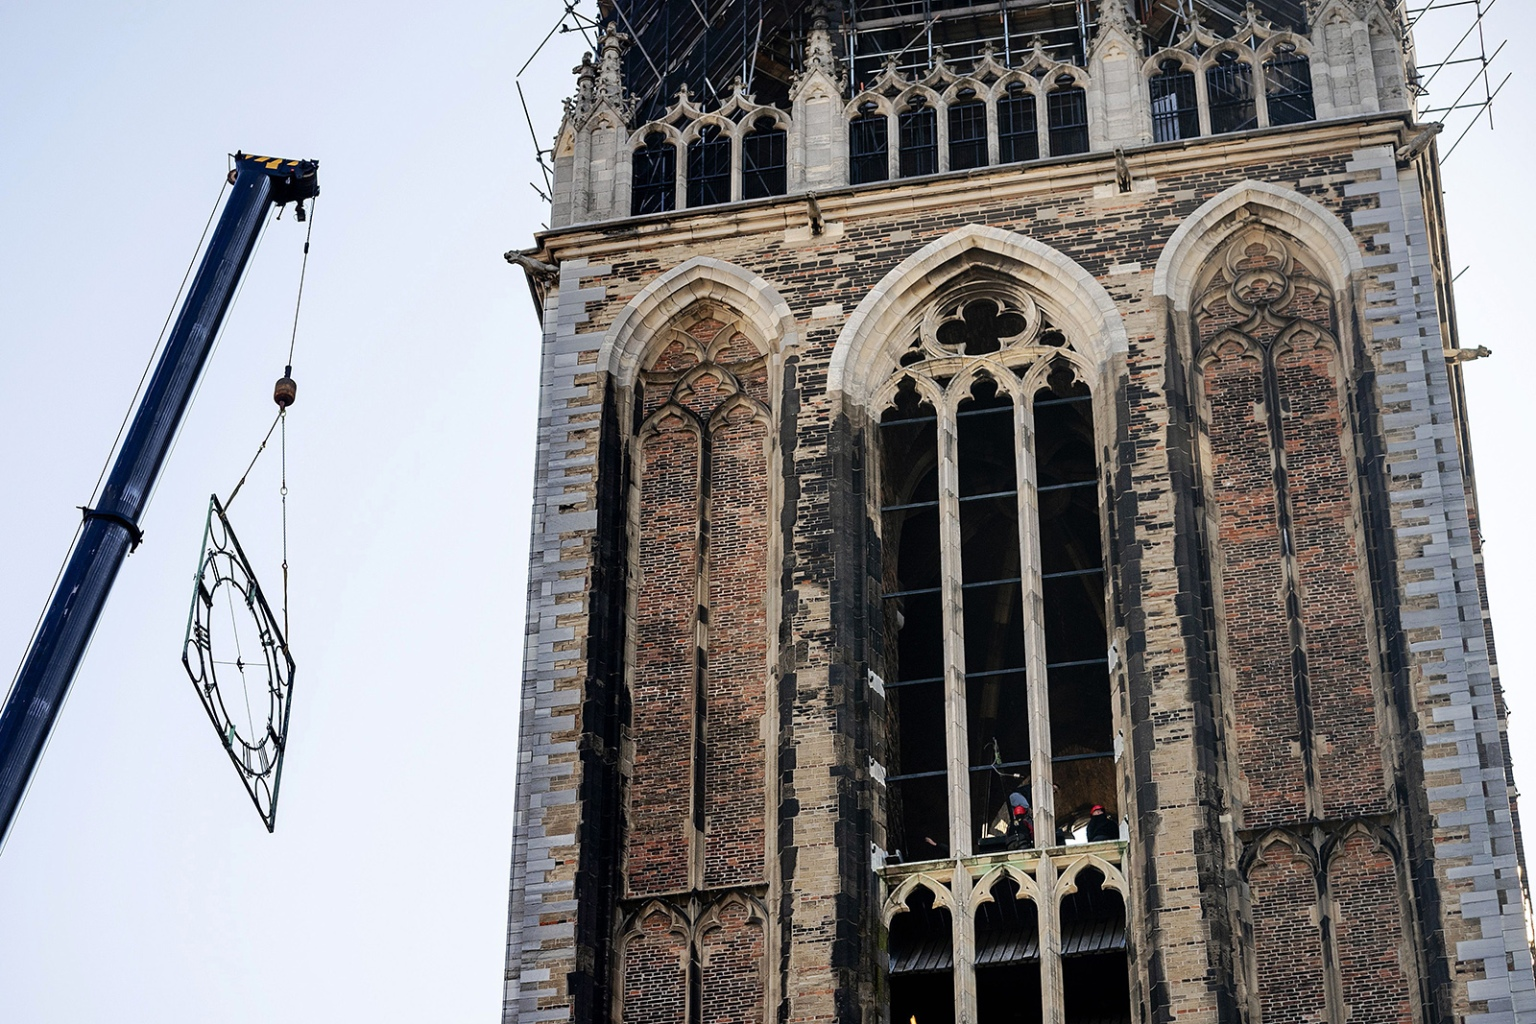 A crane removes a clock frame from the Dom Tower in Utrecht on April 29 ahead of a long period of restoration of the monument. ROBIN VAN LONKHUIJSEN/AFP/Getty Images